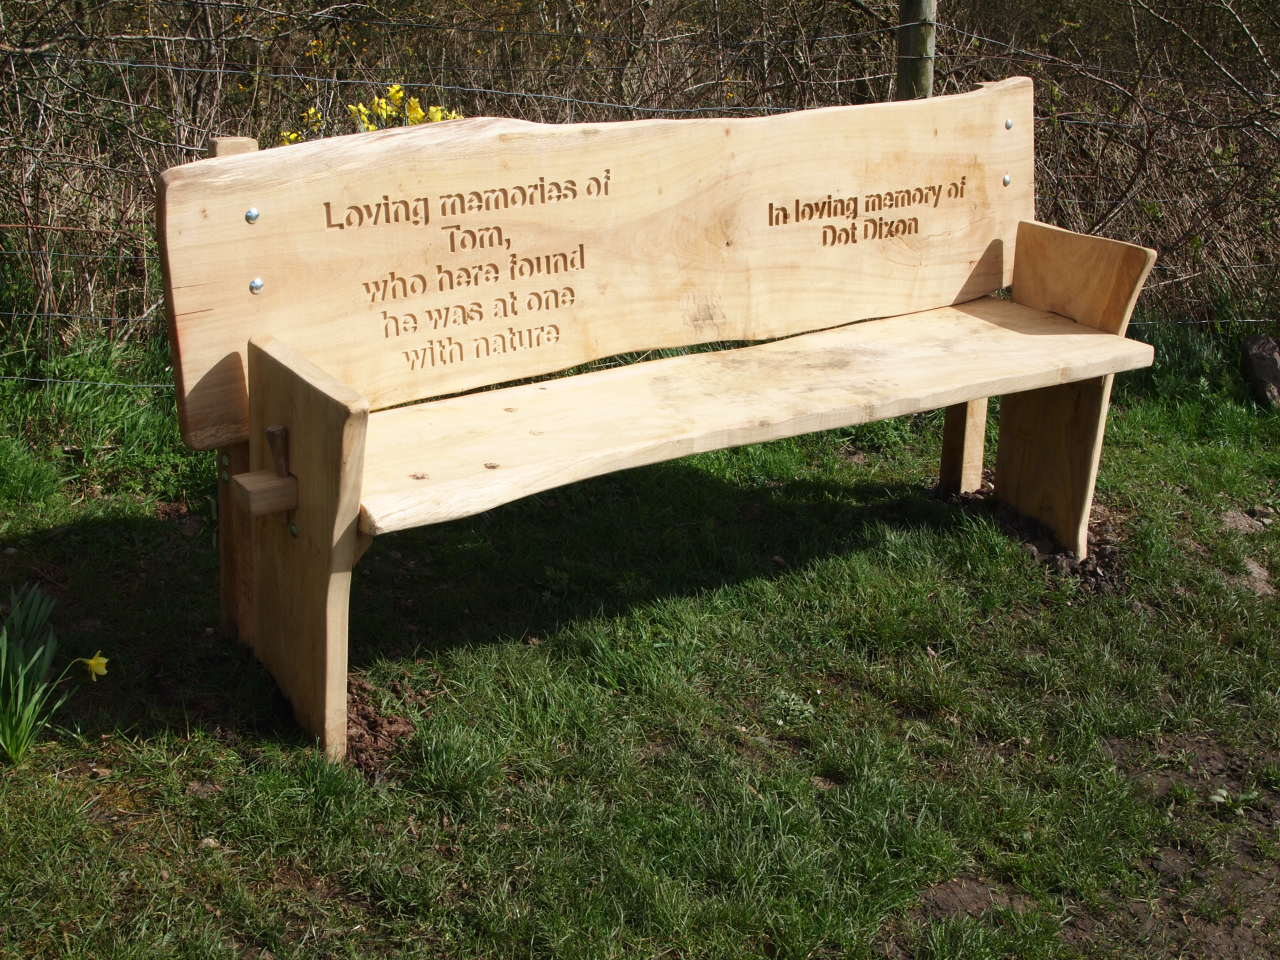 The new bench, installed late March 2016